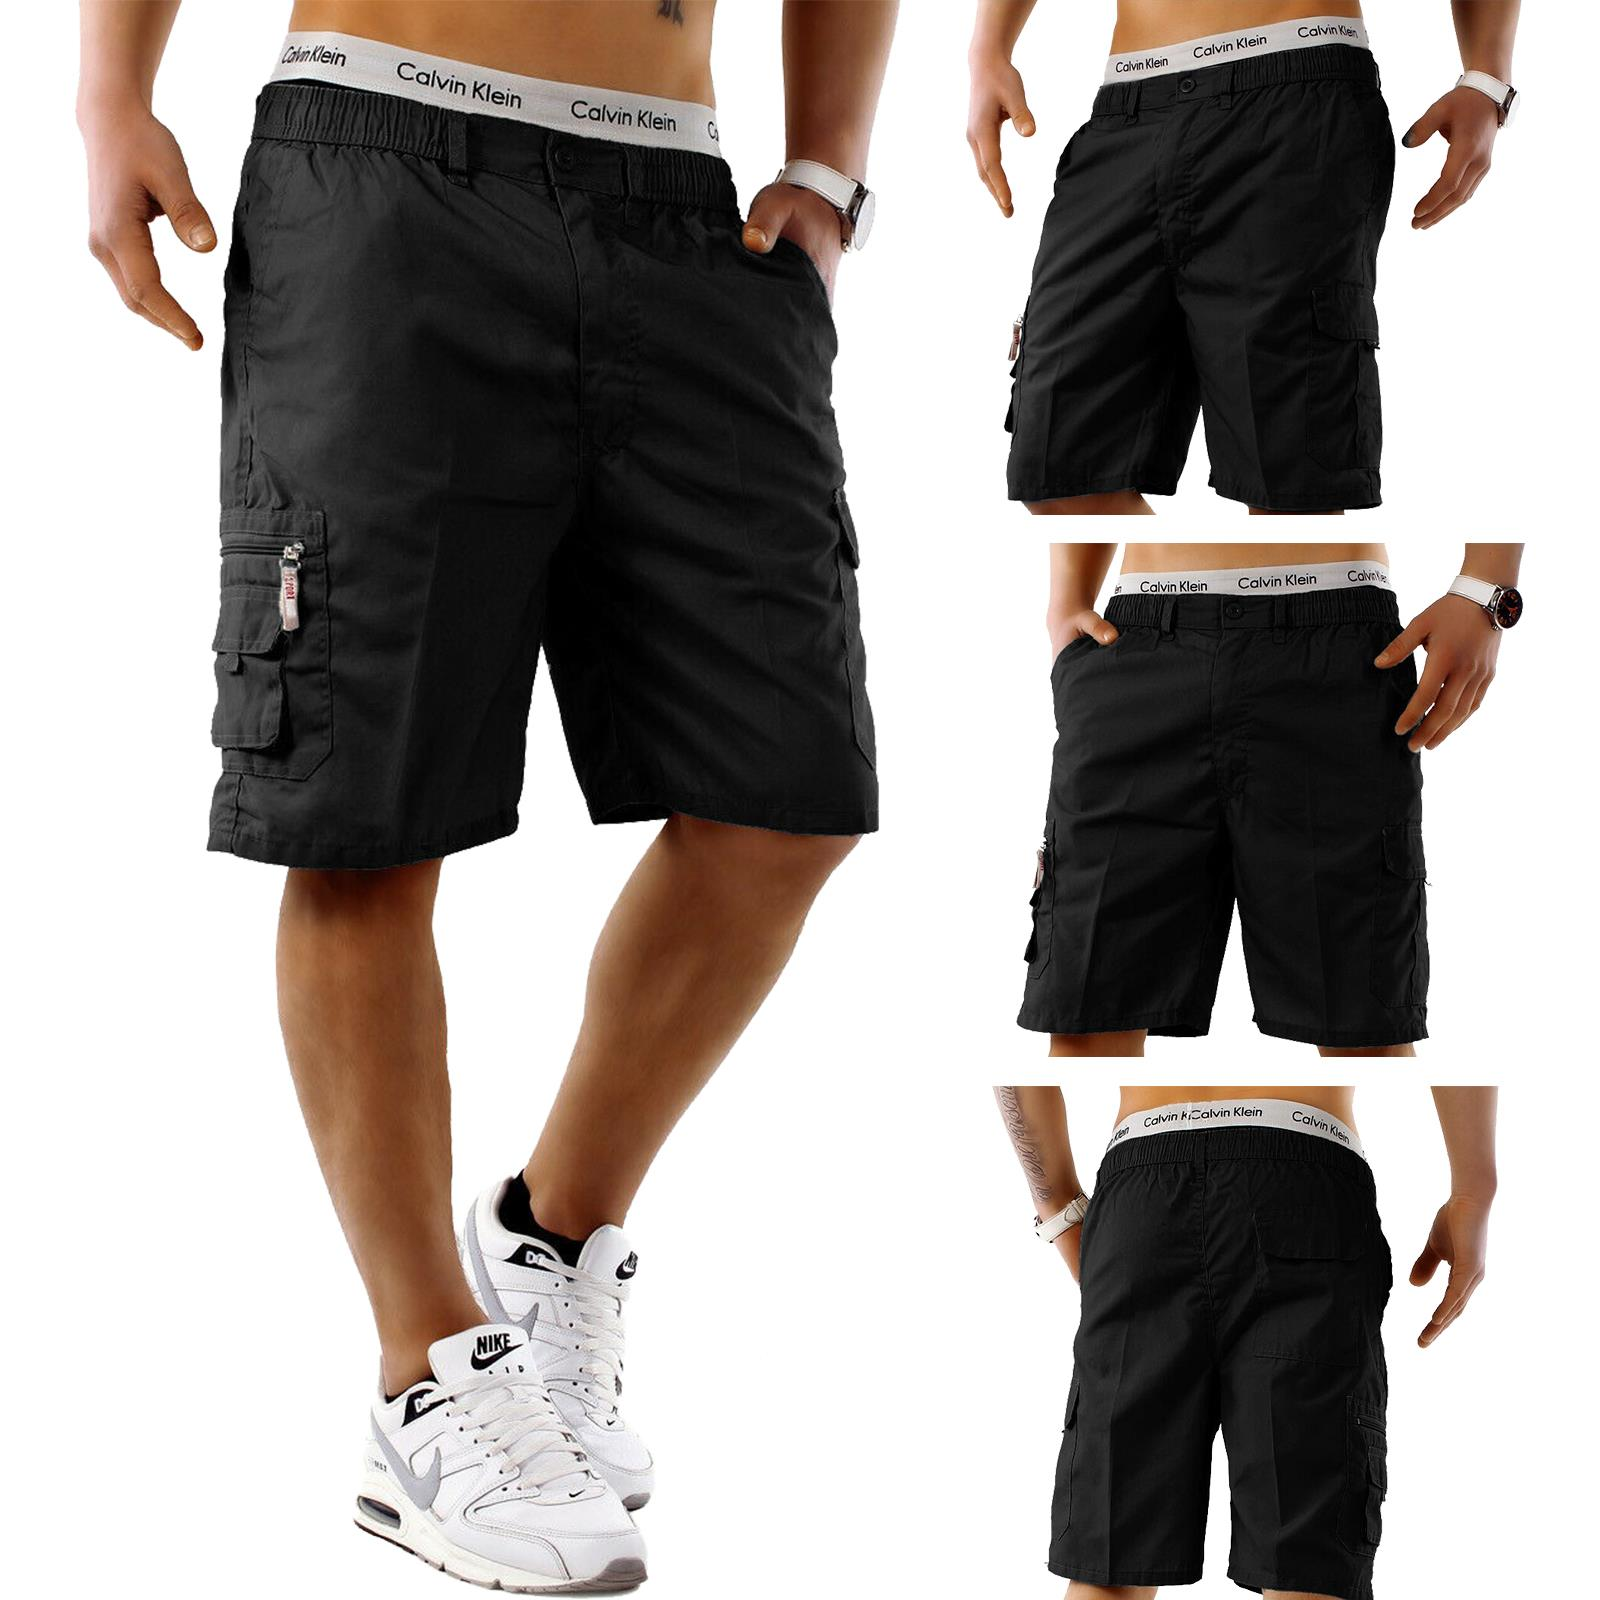 Mens-Cargo-Shorts-Elasticated-Waist-Casual-Cotton-Combat-Pants-M-L-XL-2XL-3XL thumbnail 3